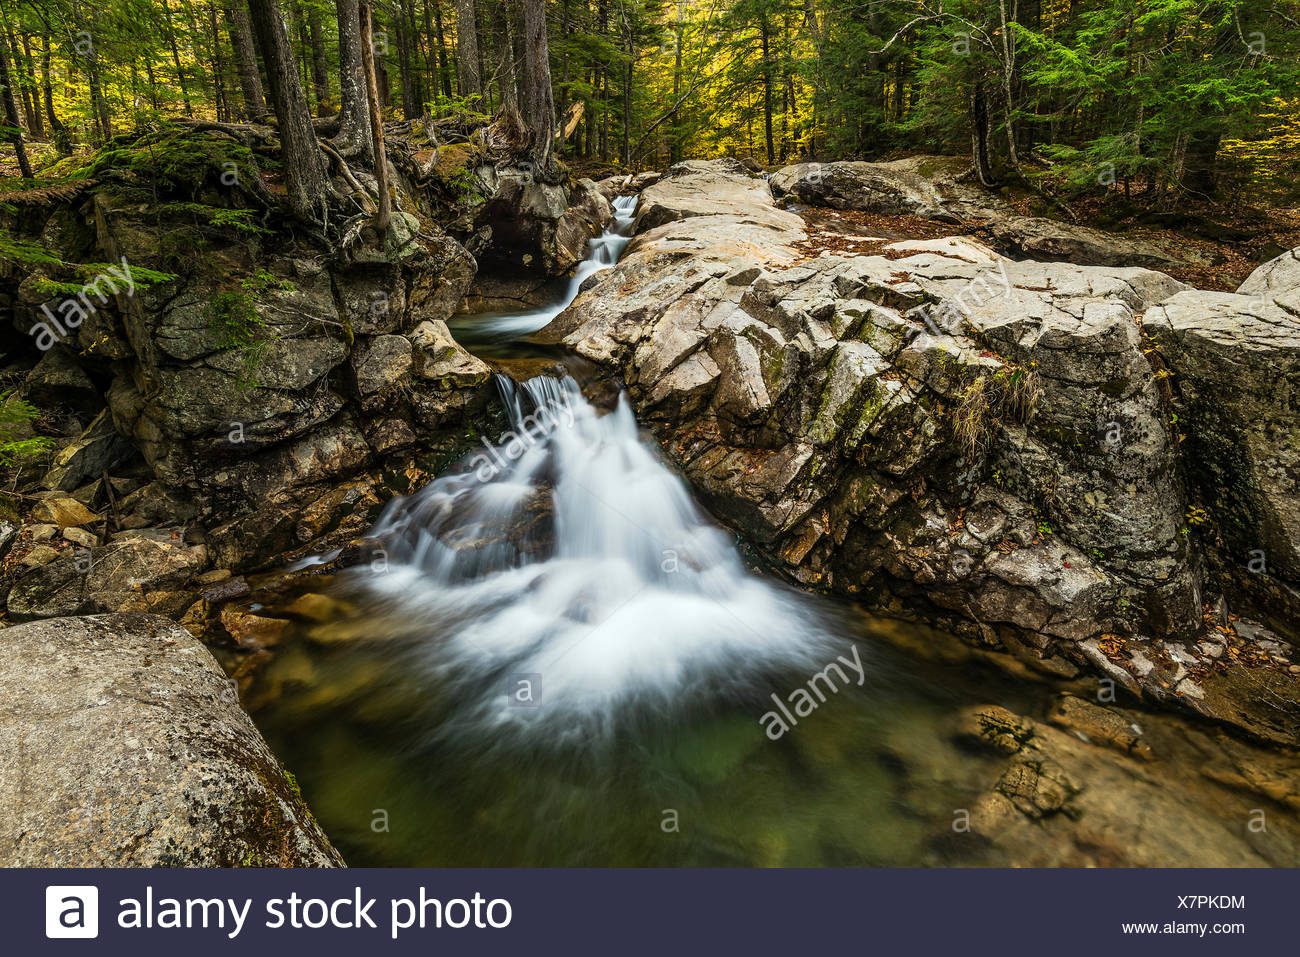 Waterfall at the Basin in Franconia State Park, New Hampshire, USA. - Stock Image